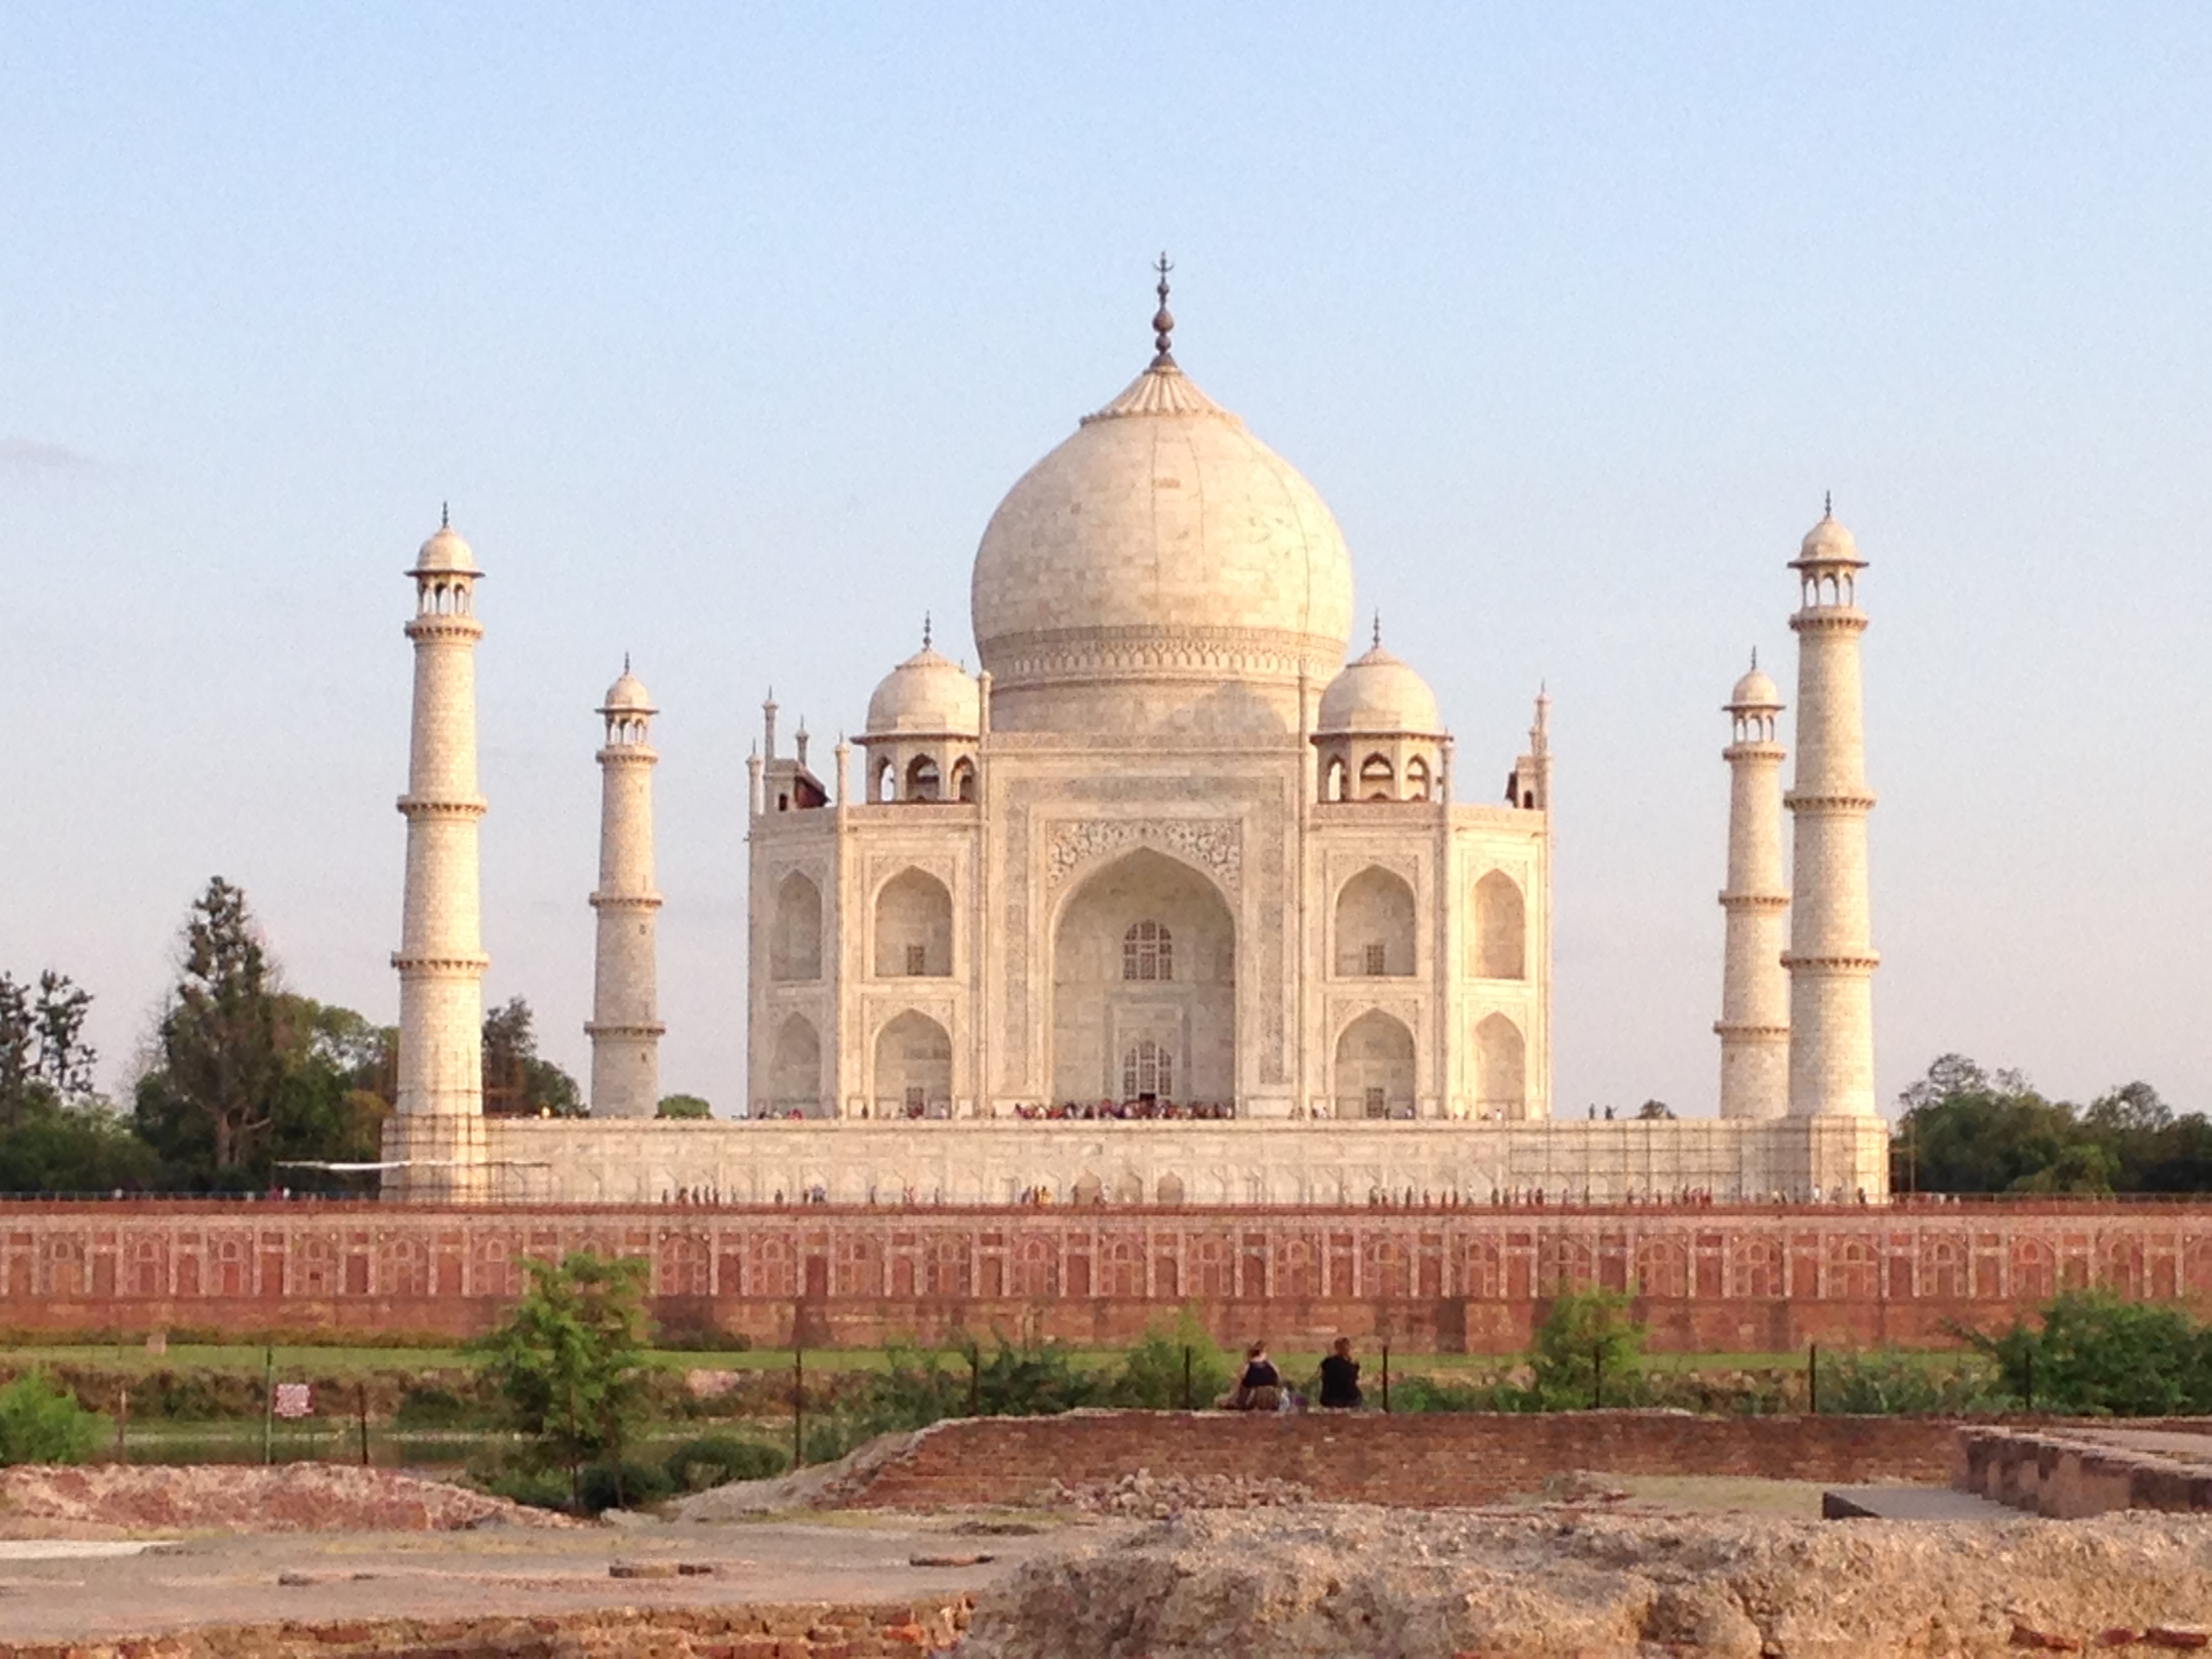 Dreams do come true! – Agra & Jaipur, India